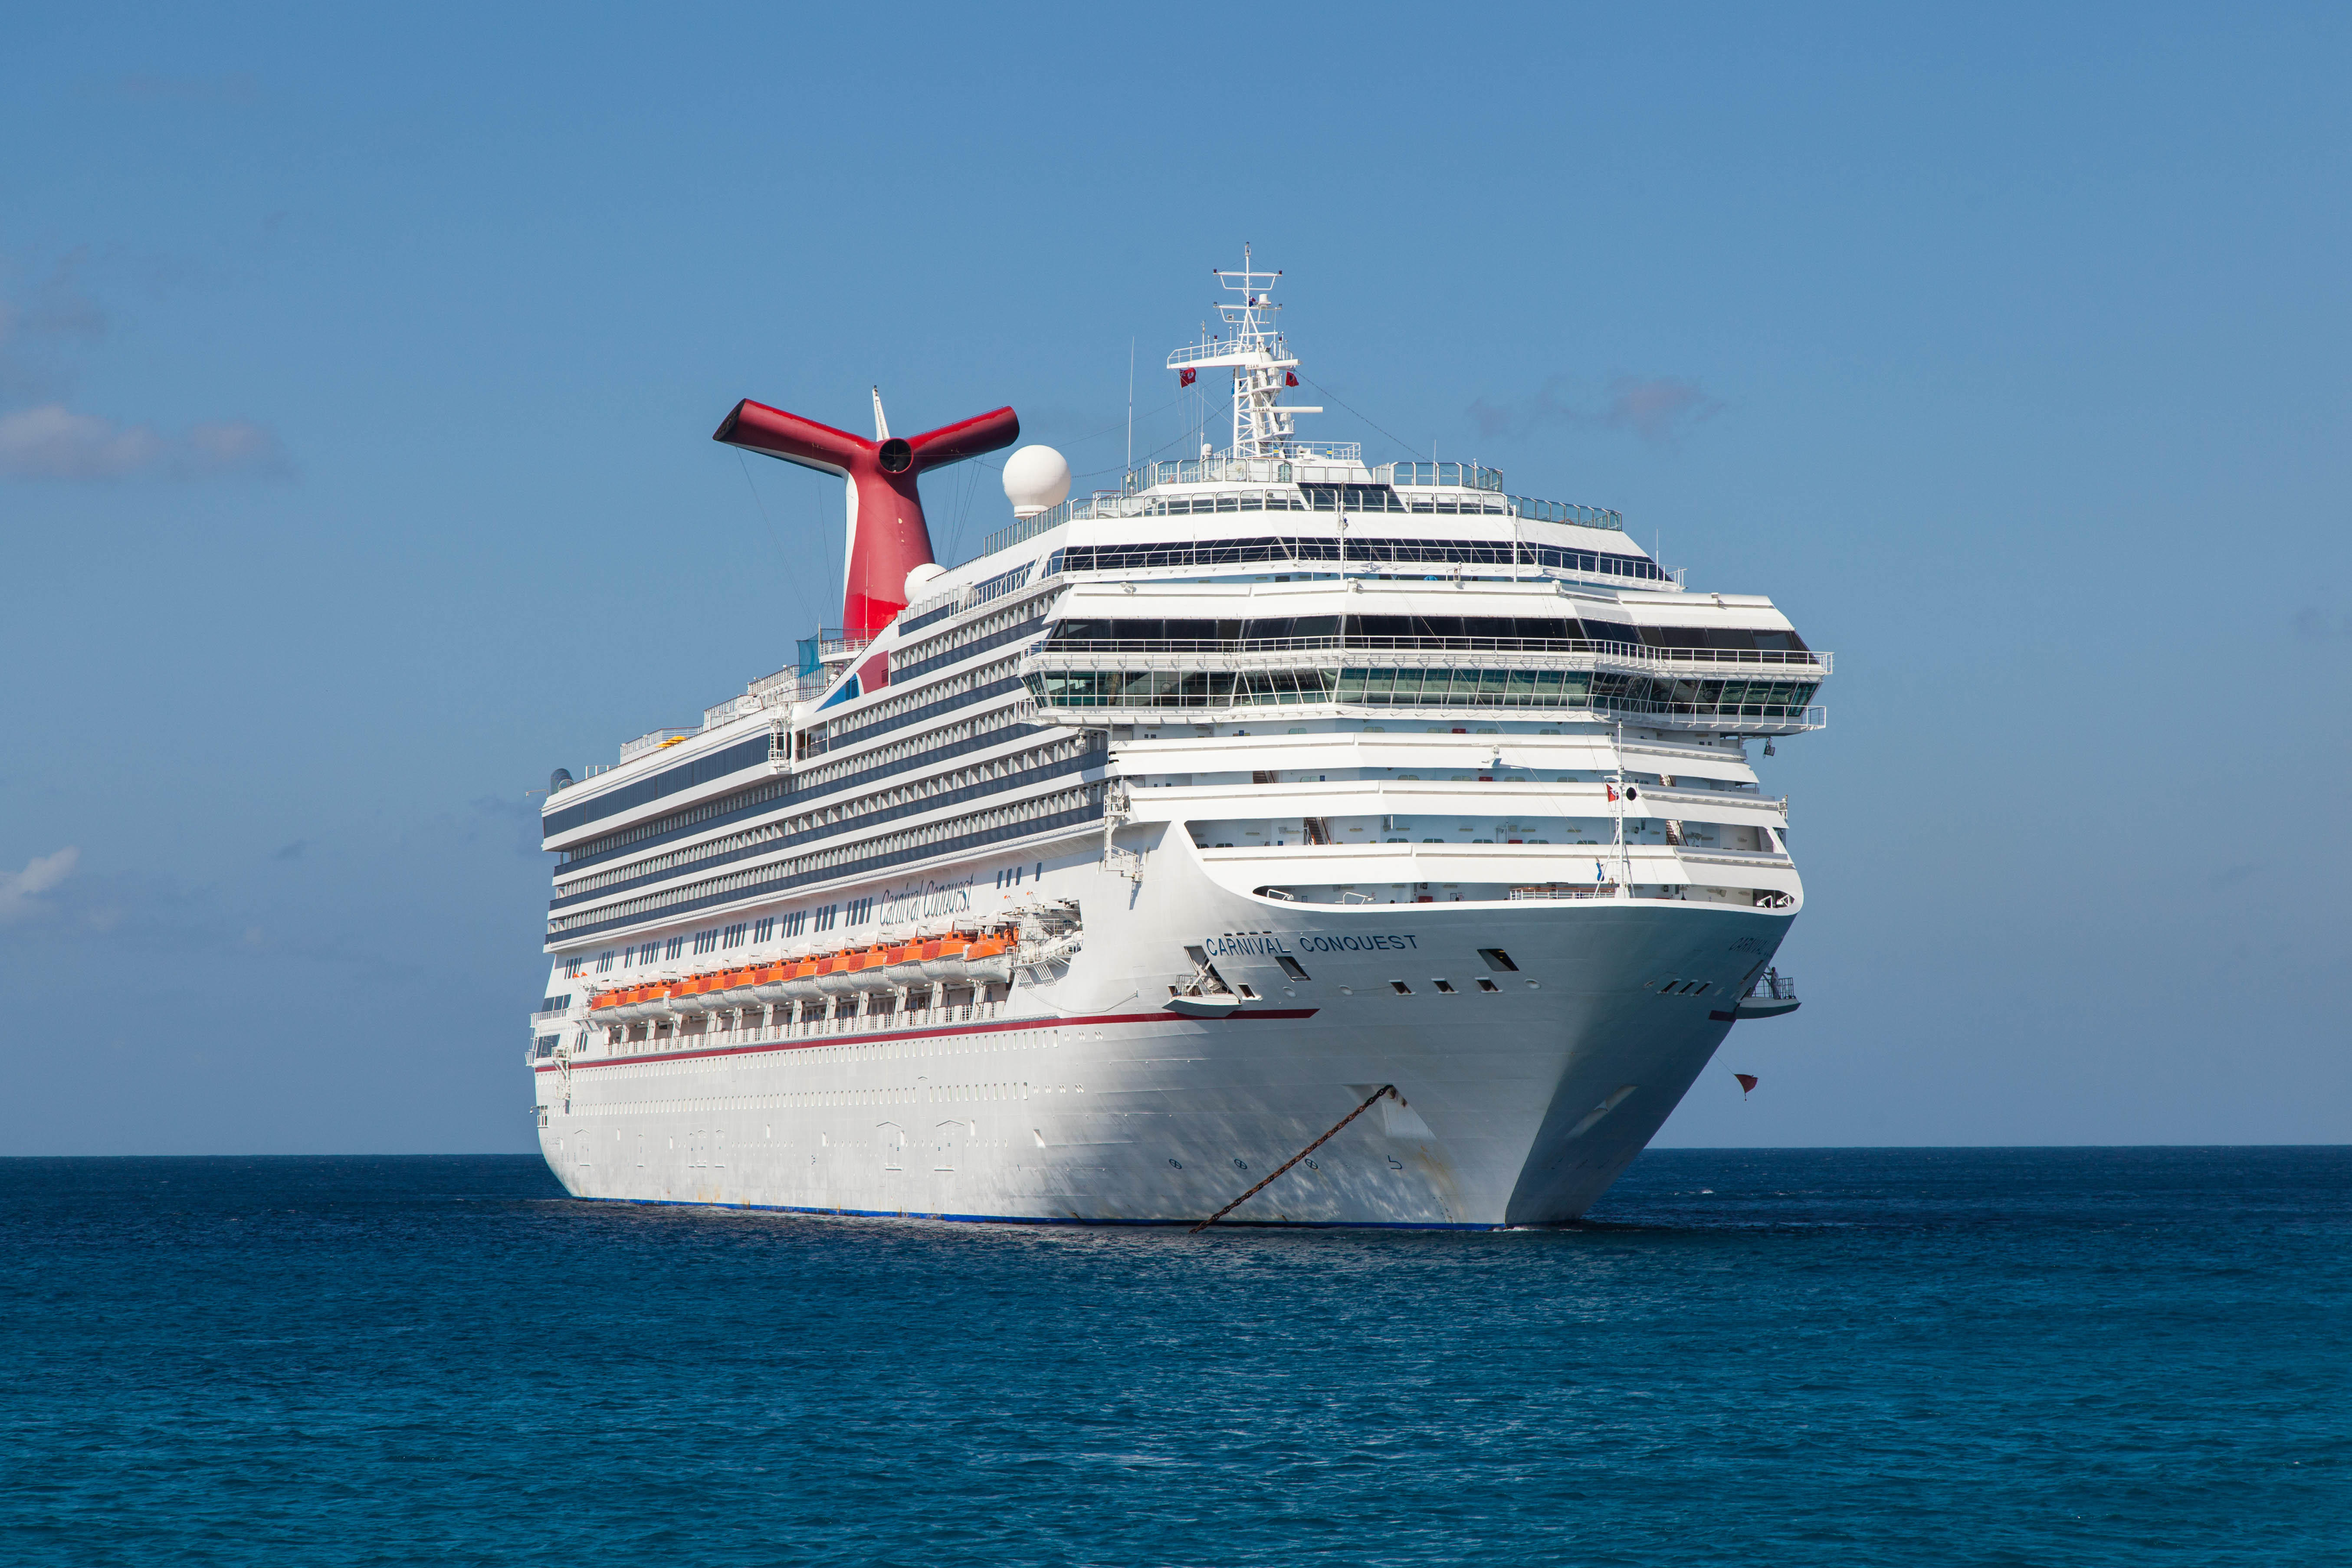 Victoria Cruise Ship As Well Carnival Conquest Or Key West And ...